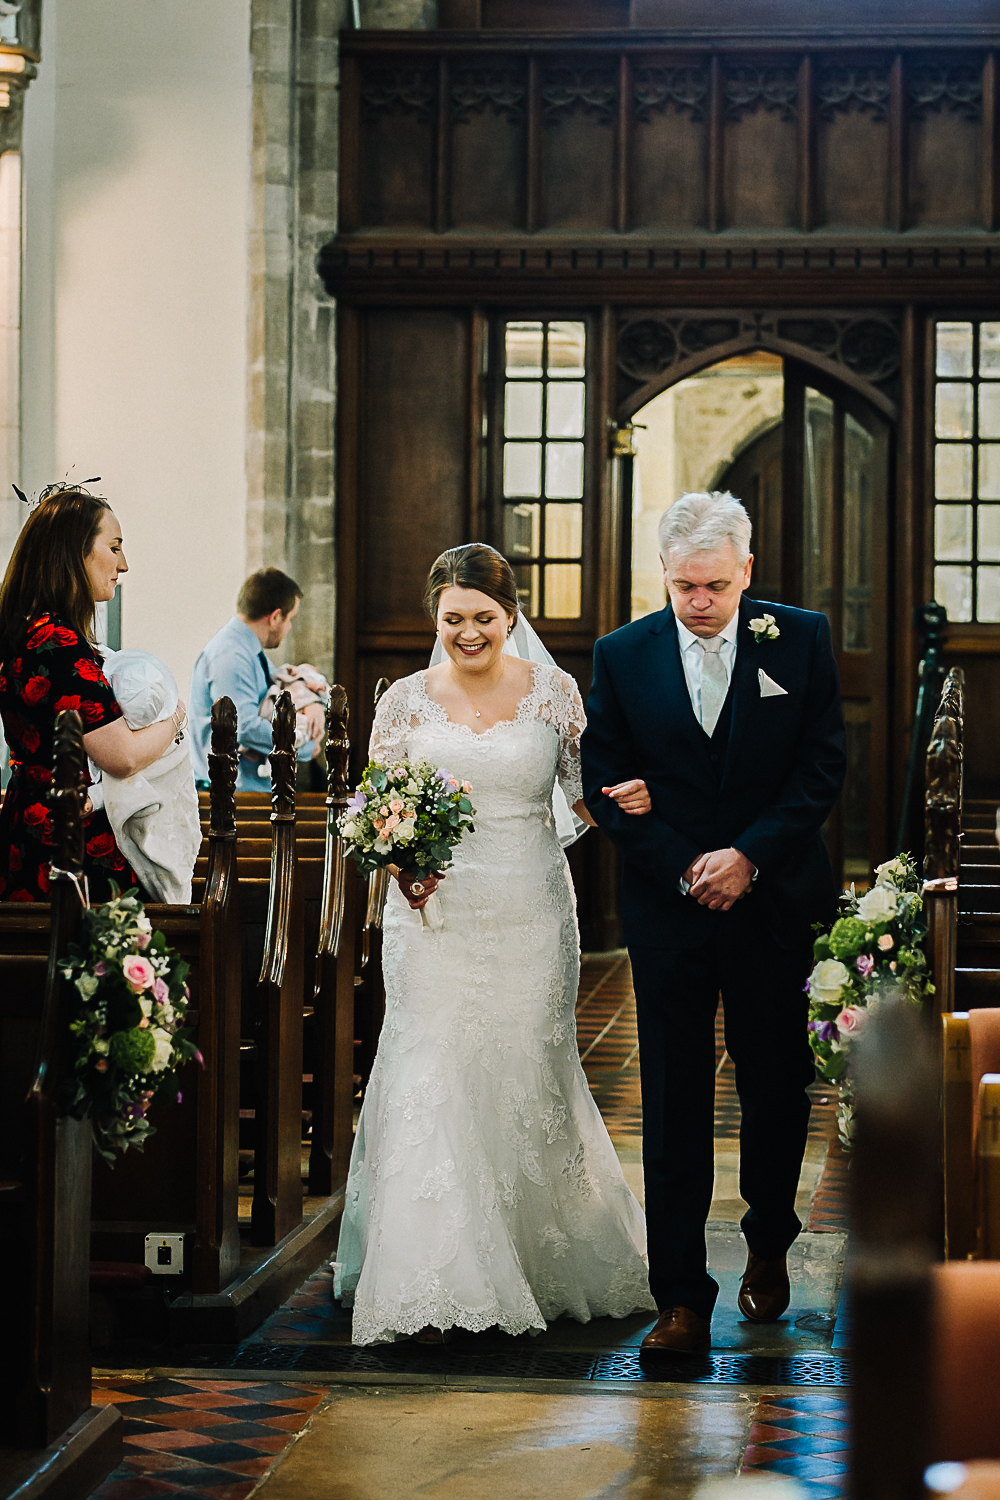 Bride Walking Down the Aisle at Cottenham All Saint's Church - Swynford Manor Wedding Photographer